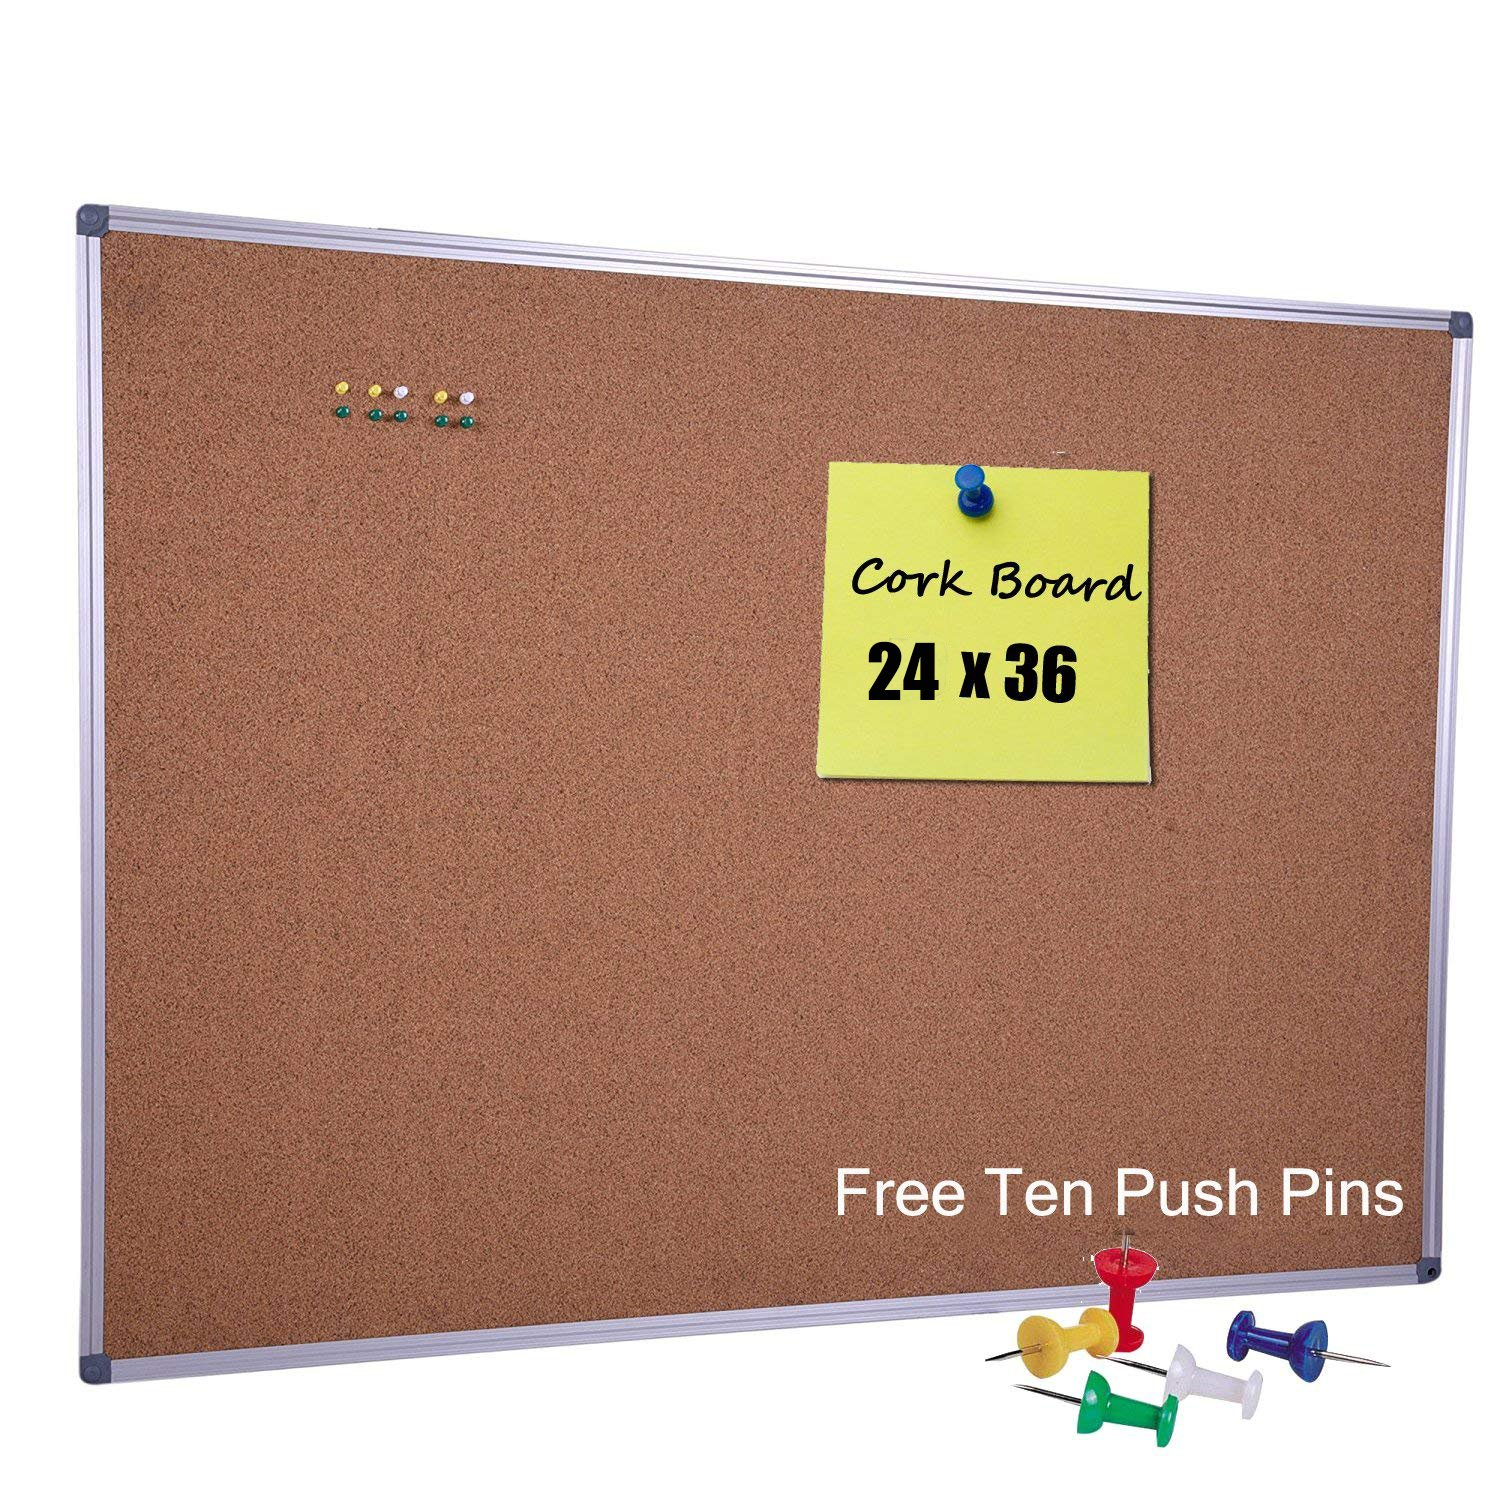 36 x 24 inch Cork Board Notice Bulletin Message Board with Satin-Finished Aluminum Frame for Home Office Classroom School, 10 Free Push Pins Included